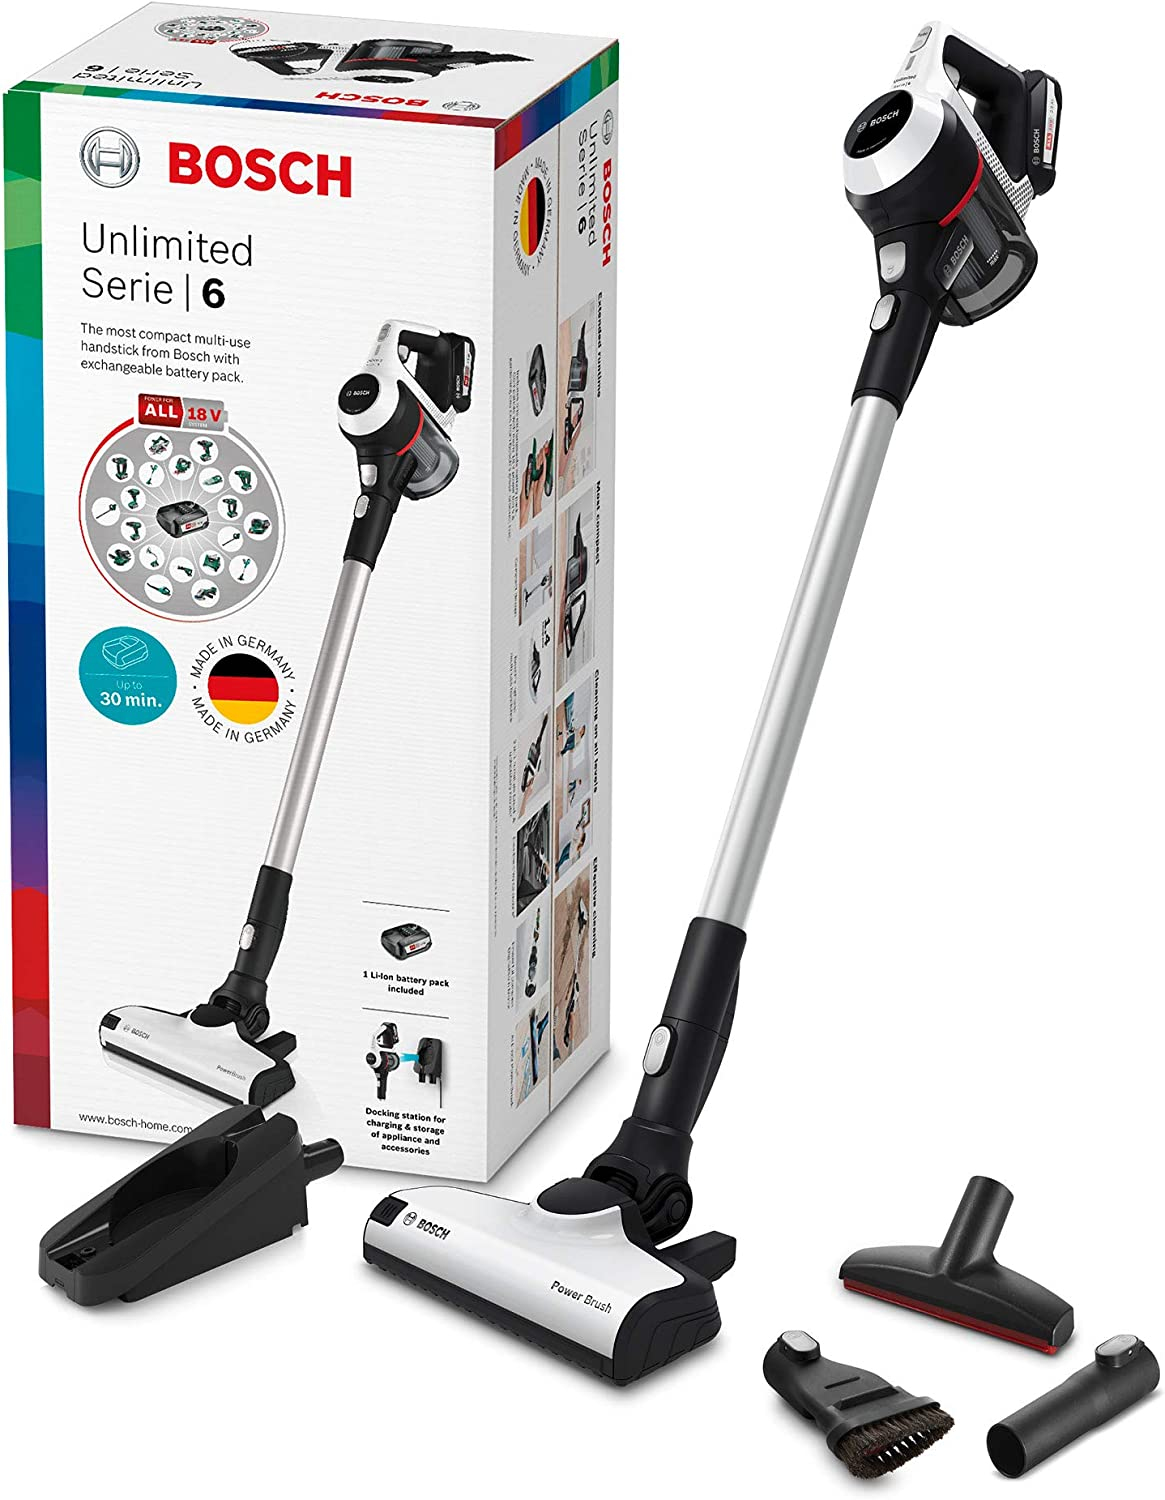 Bosch Unlimited Serie 6 BCS611AM - Aspirador escoba sin cable ...